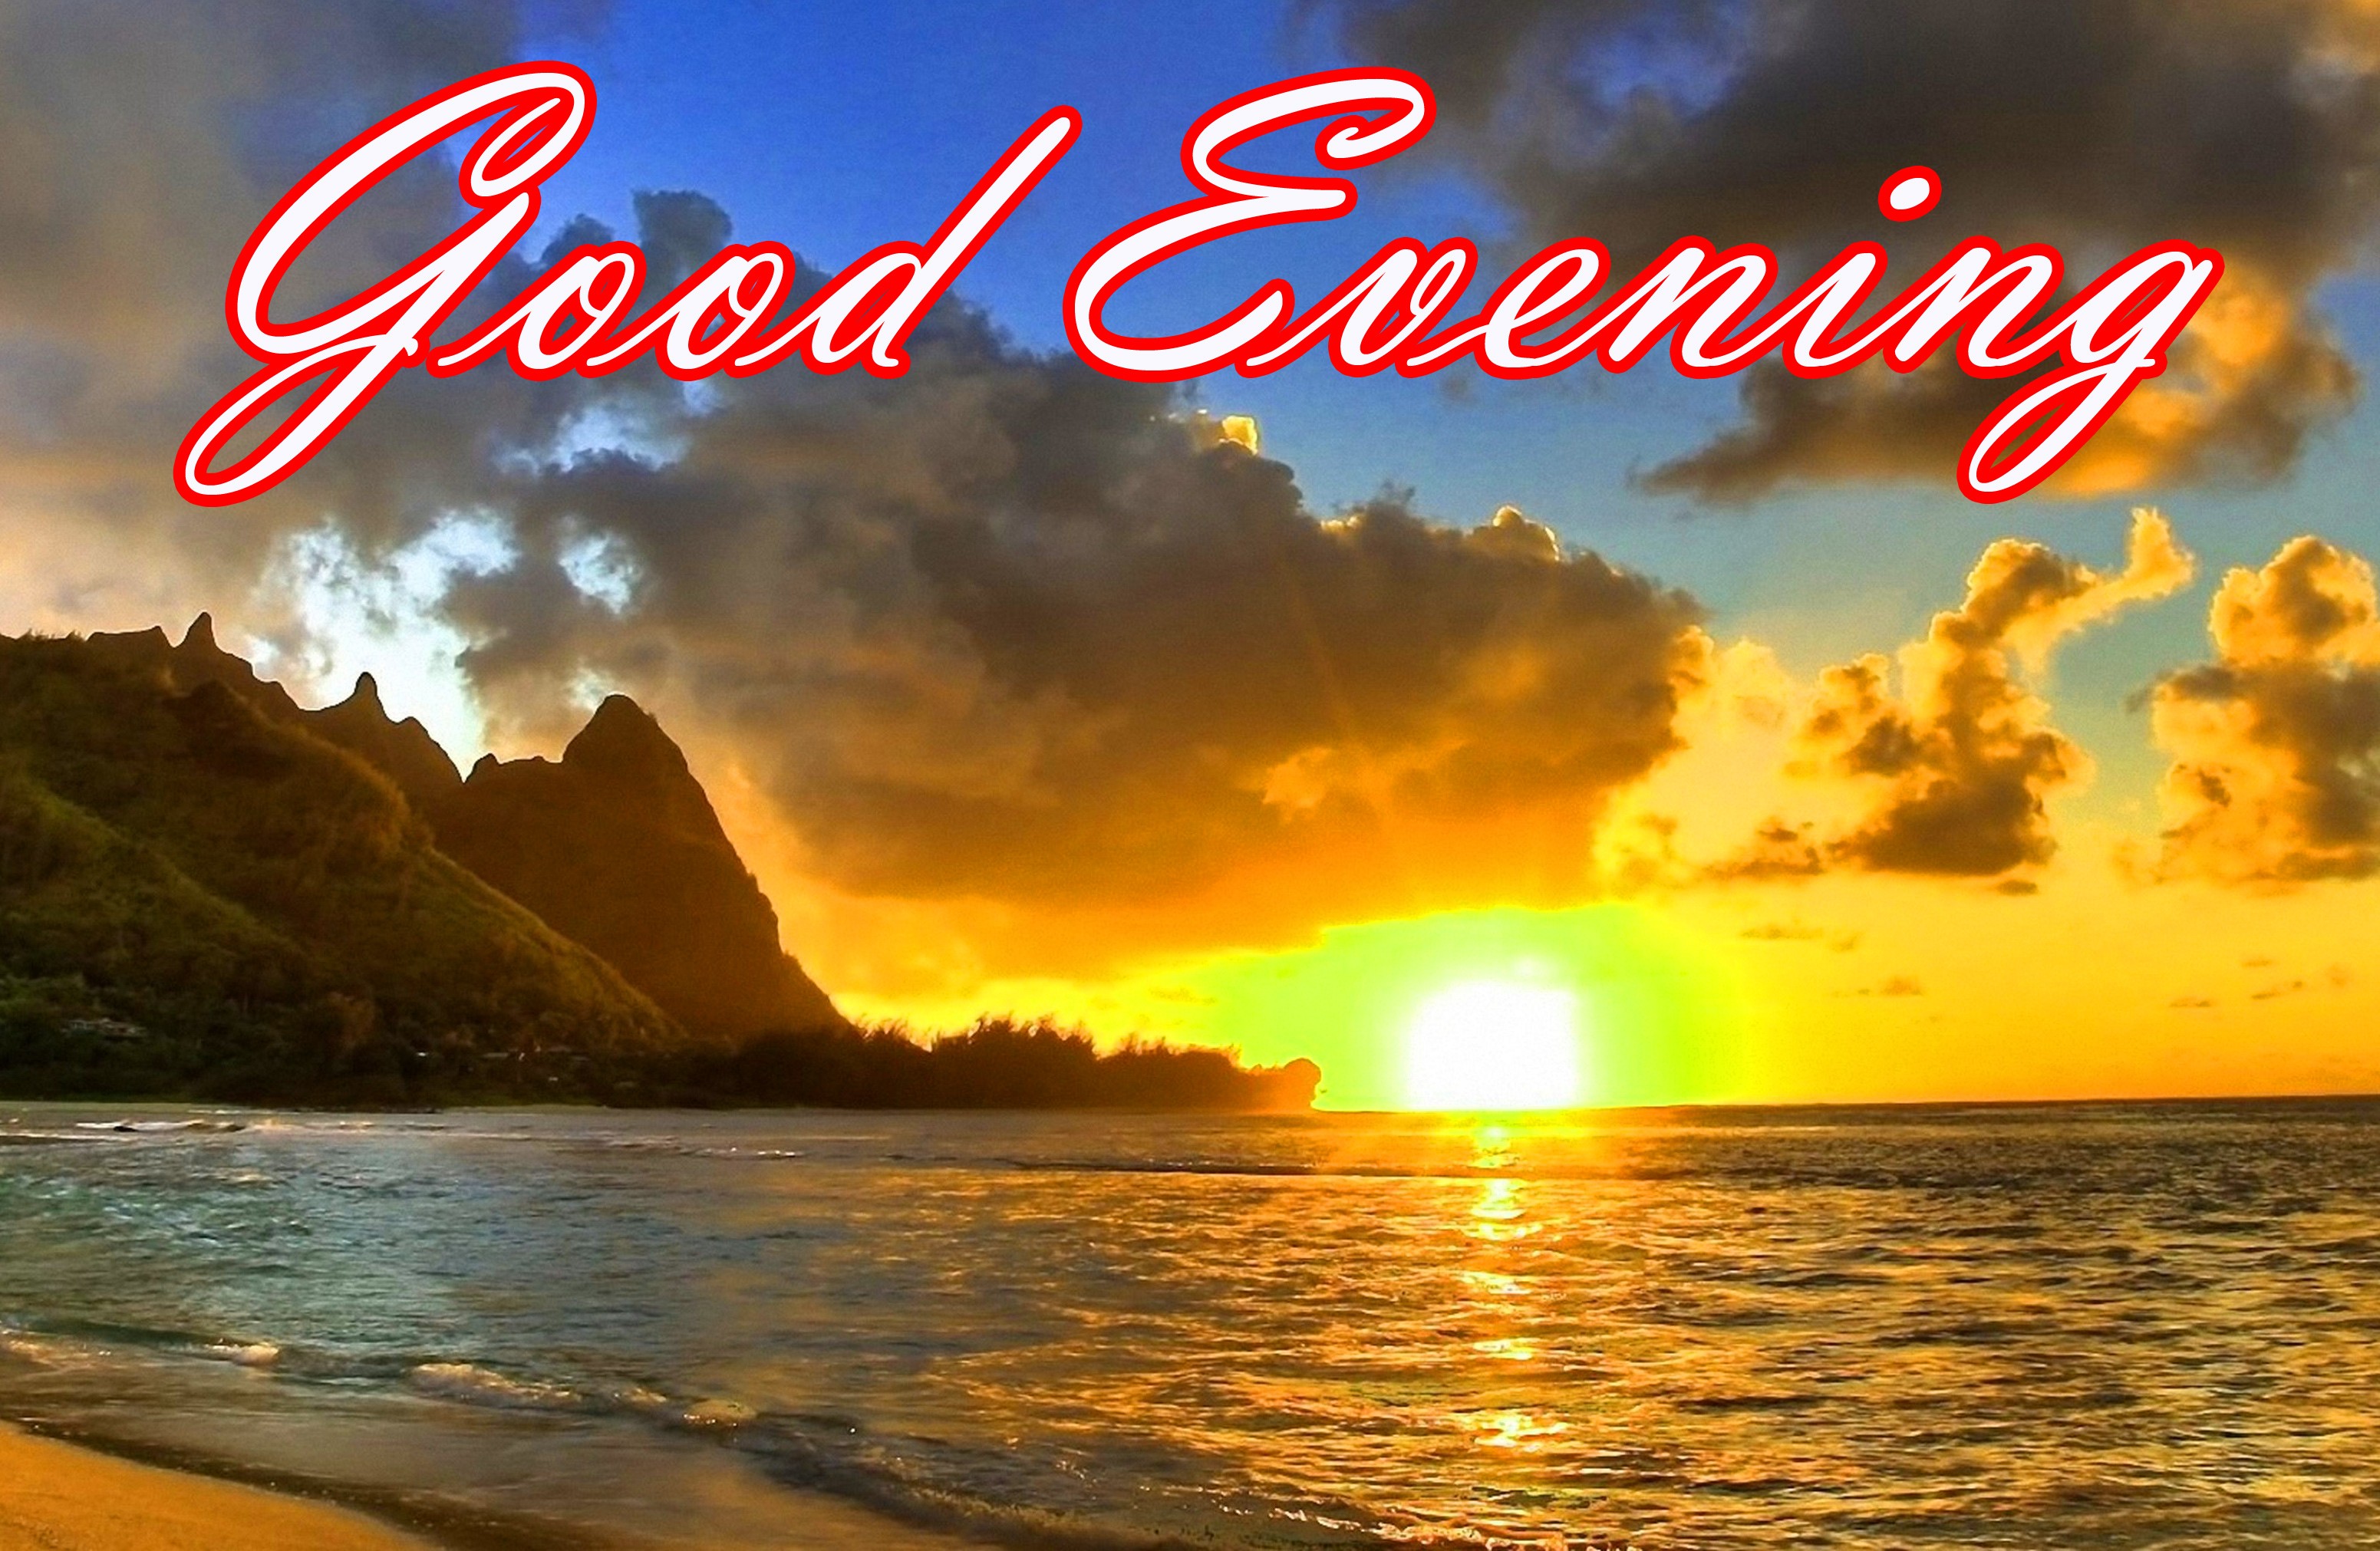 Good Evening Images Pics Wallpaper Photo Pictures Free HD Download